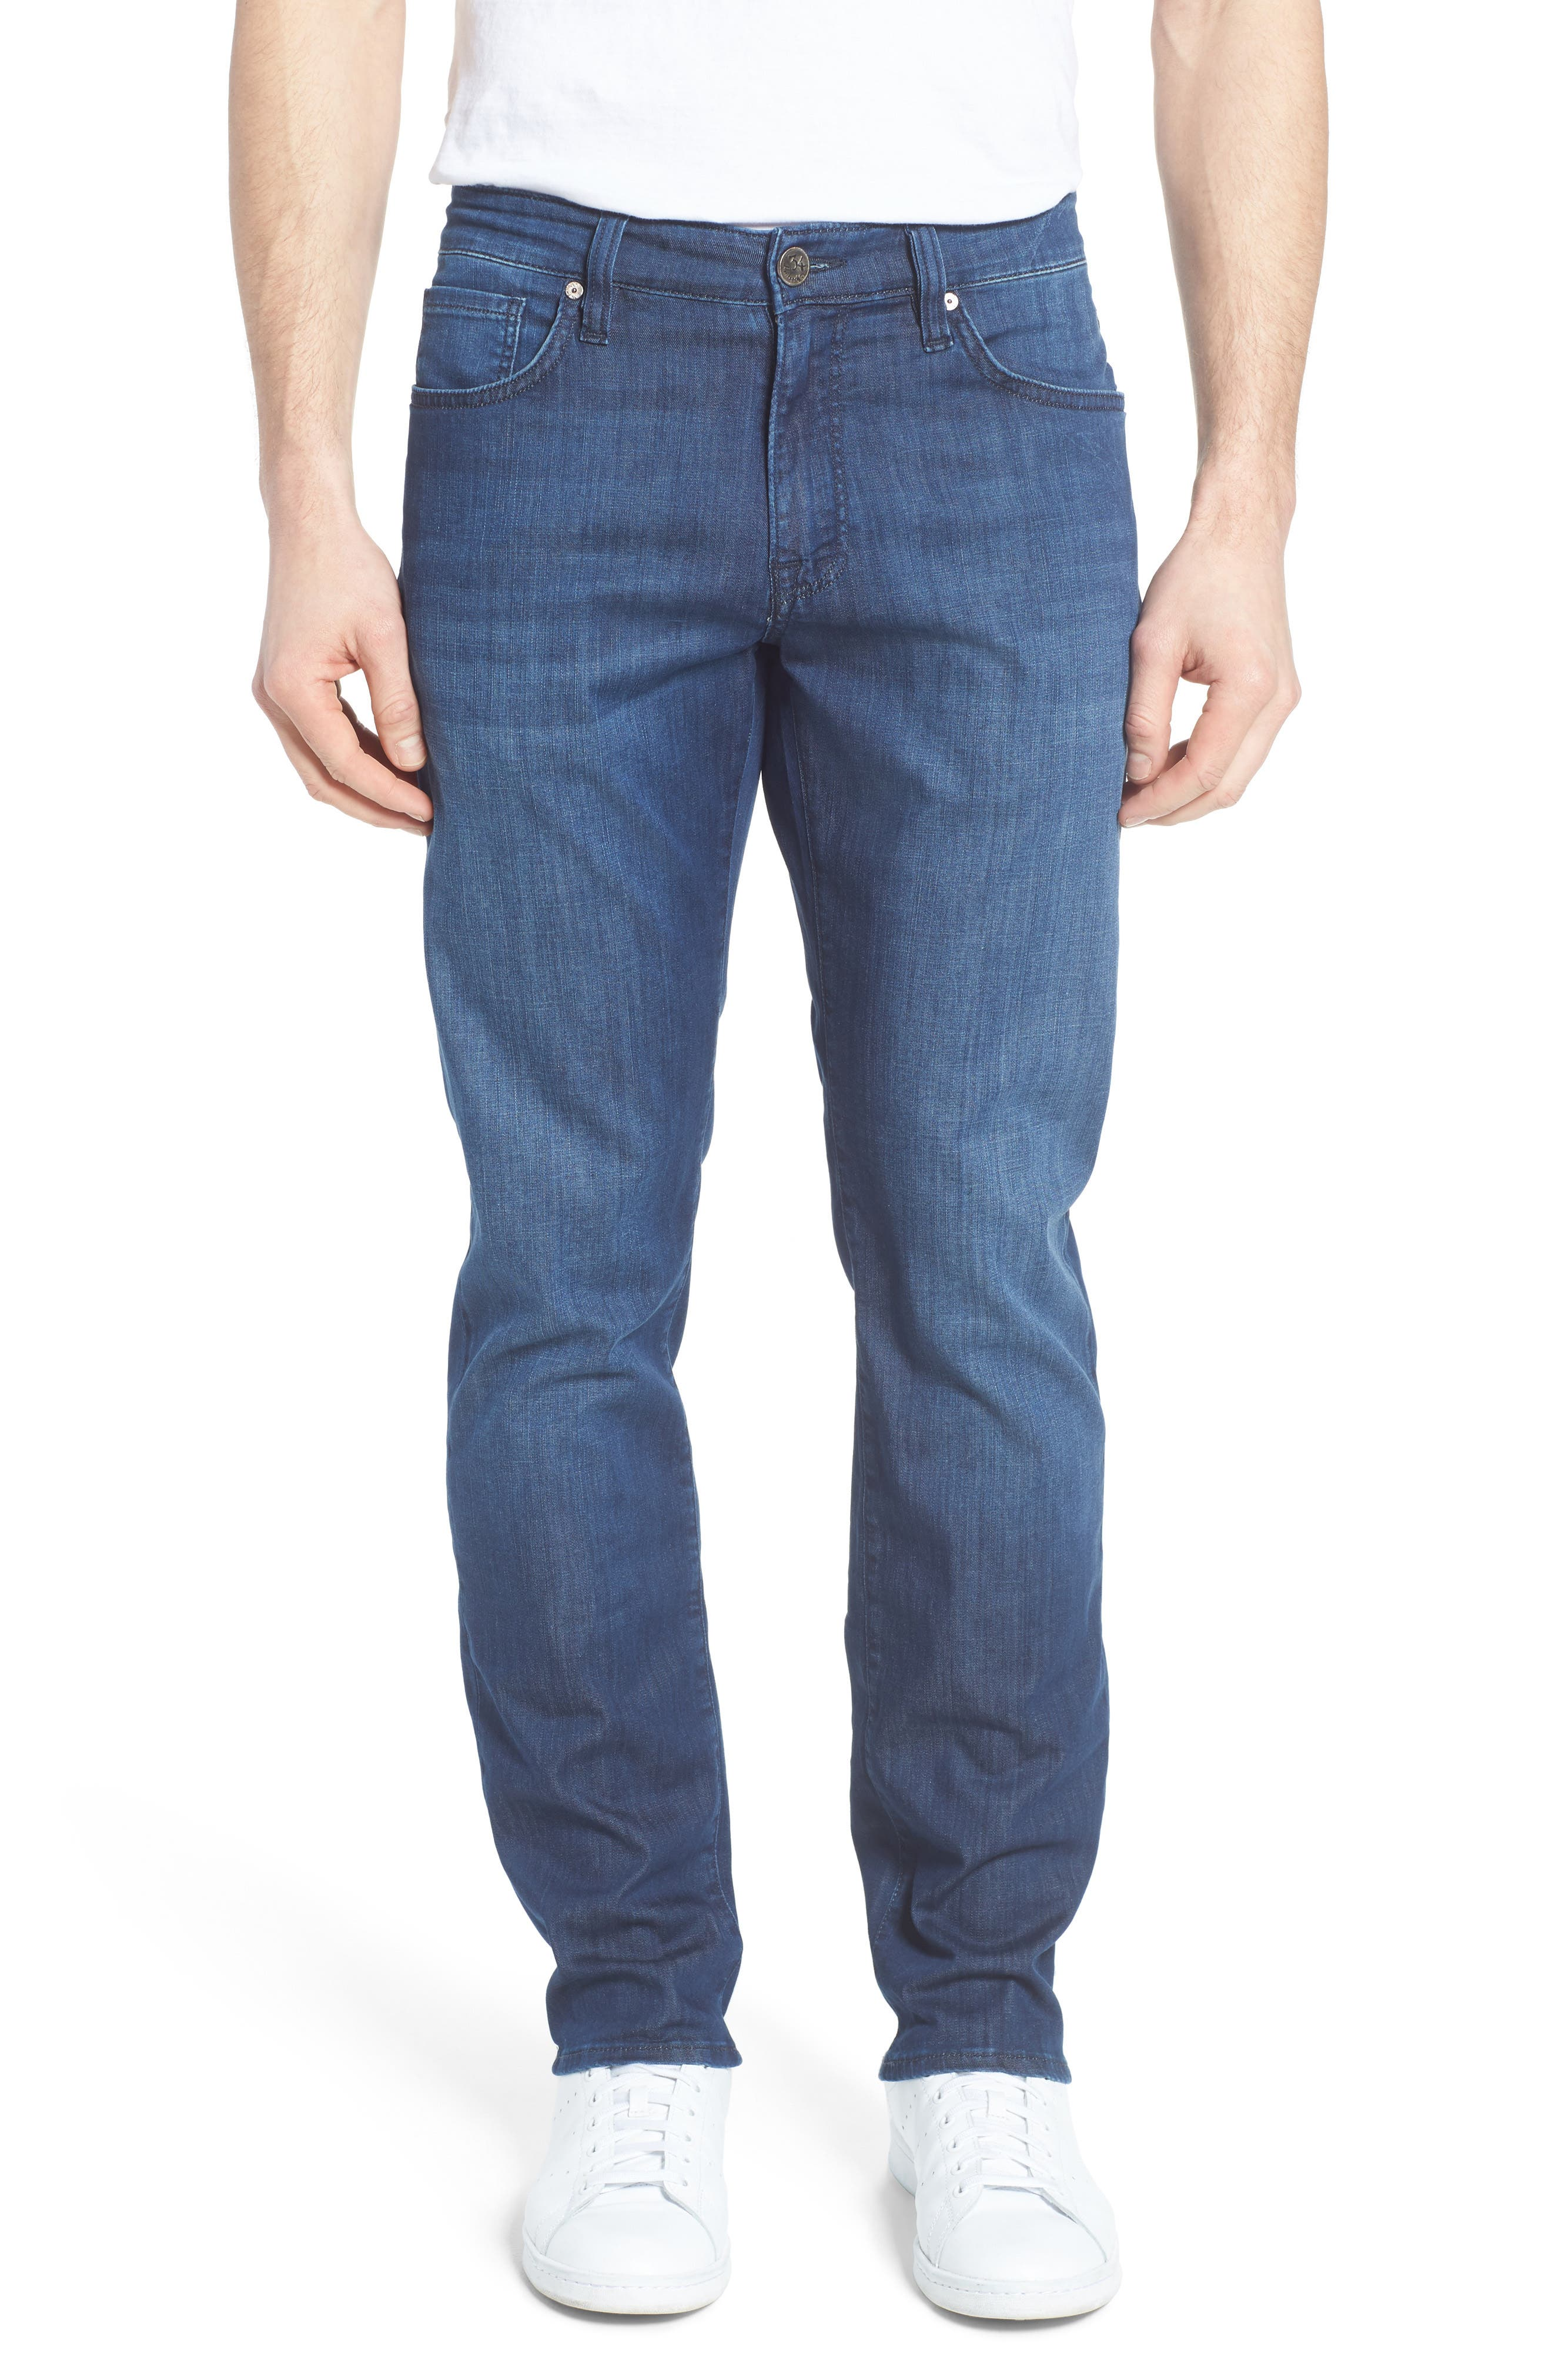 34 Heritage Courage Straight Leg Jeans (Mid Summer)